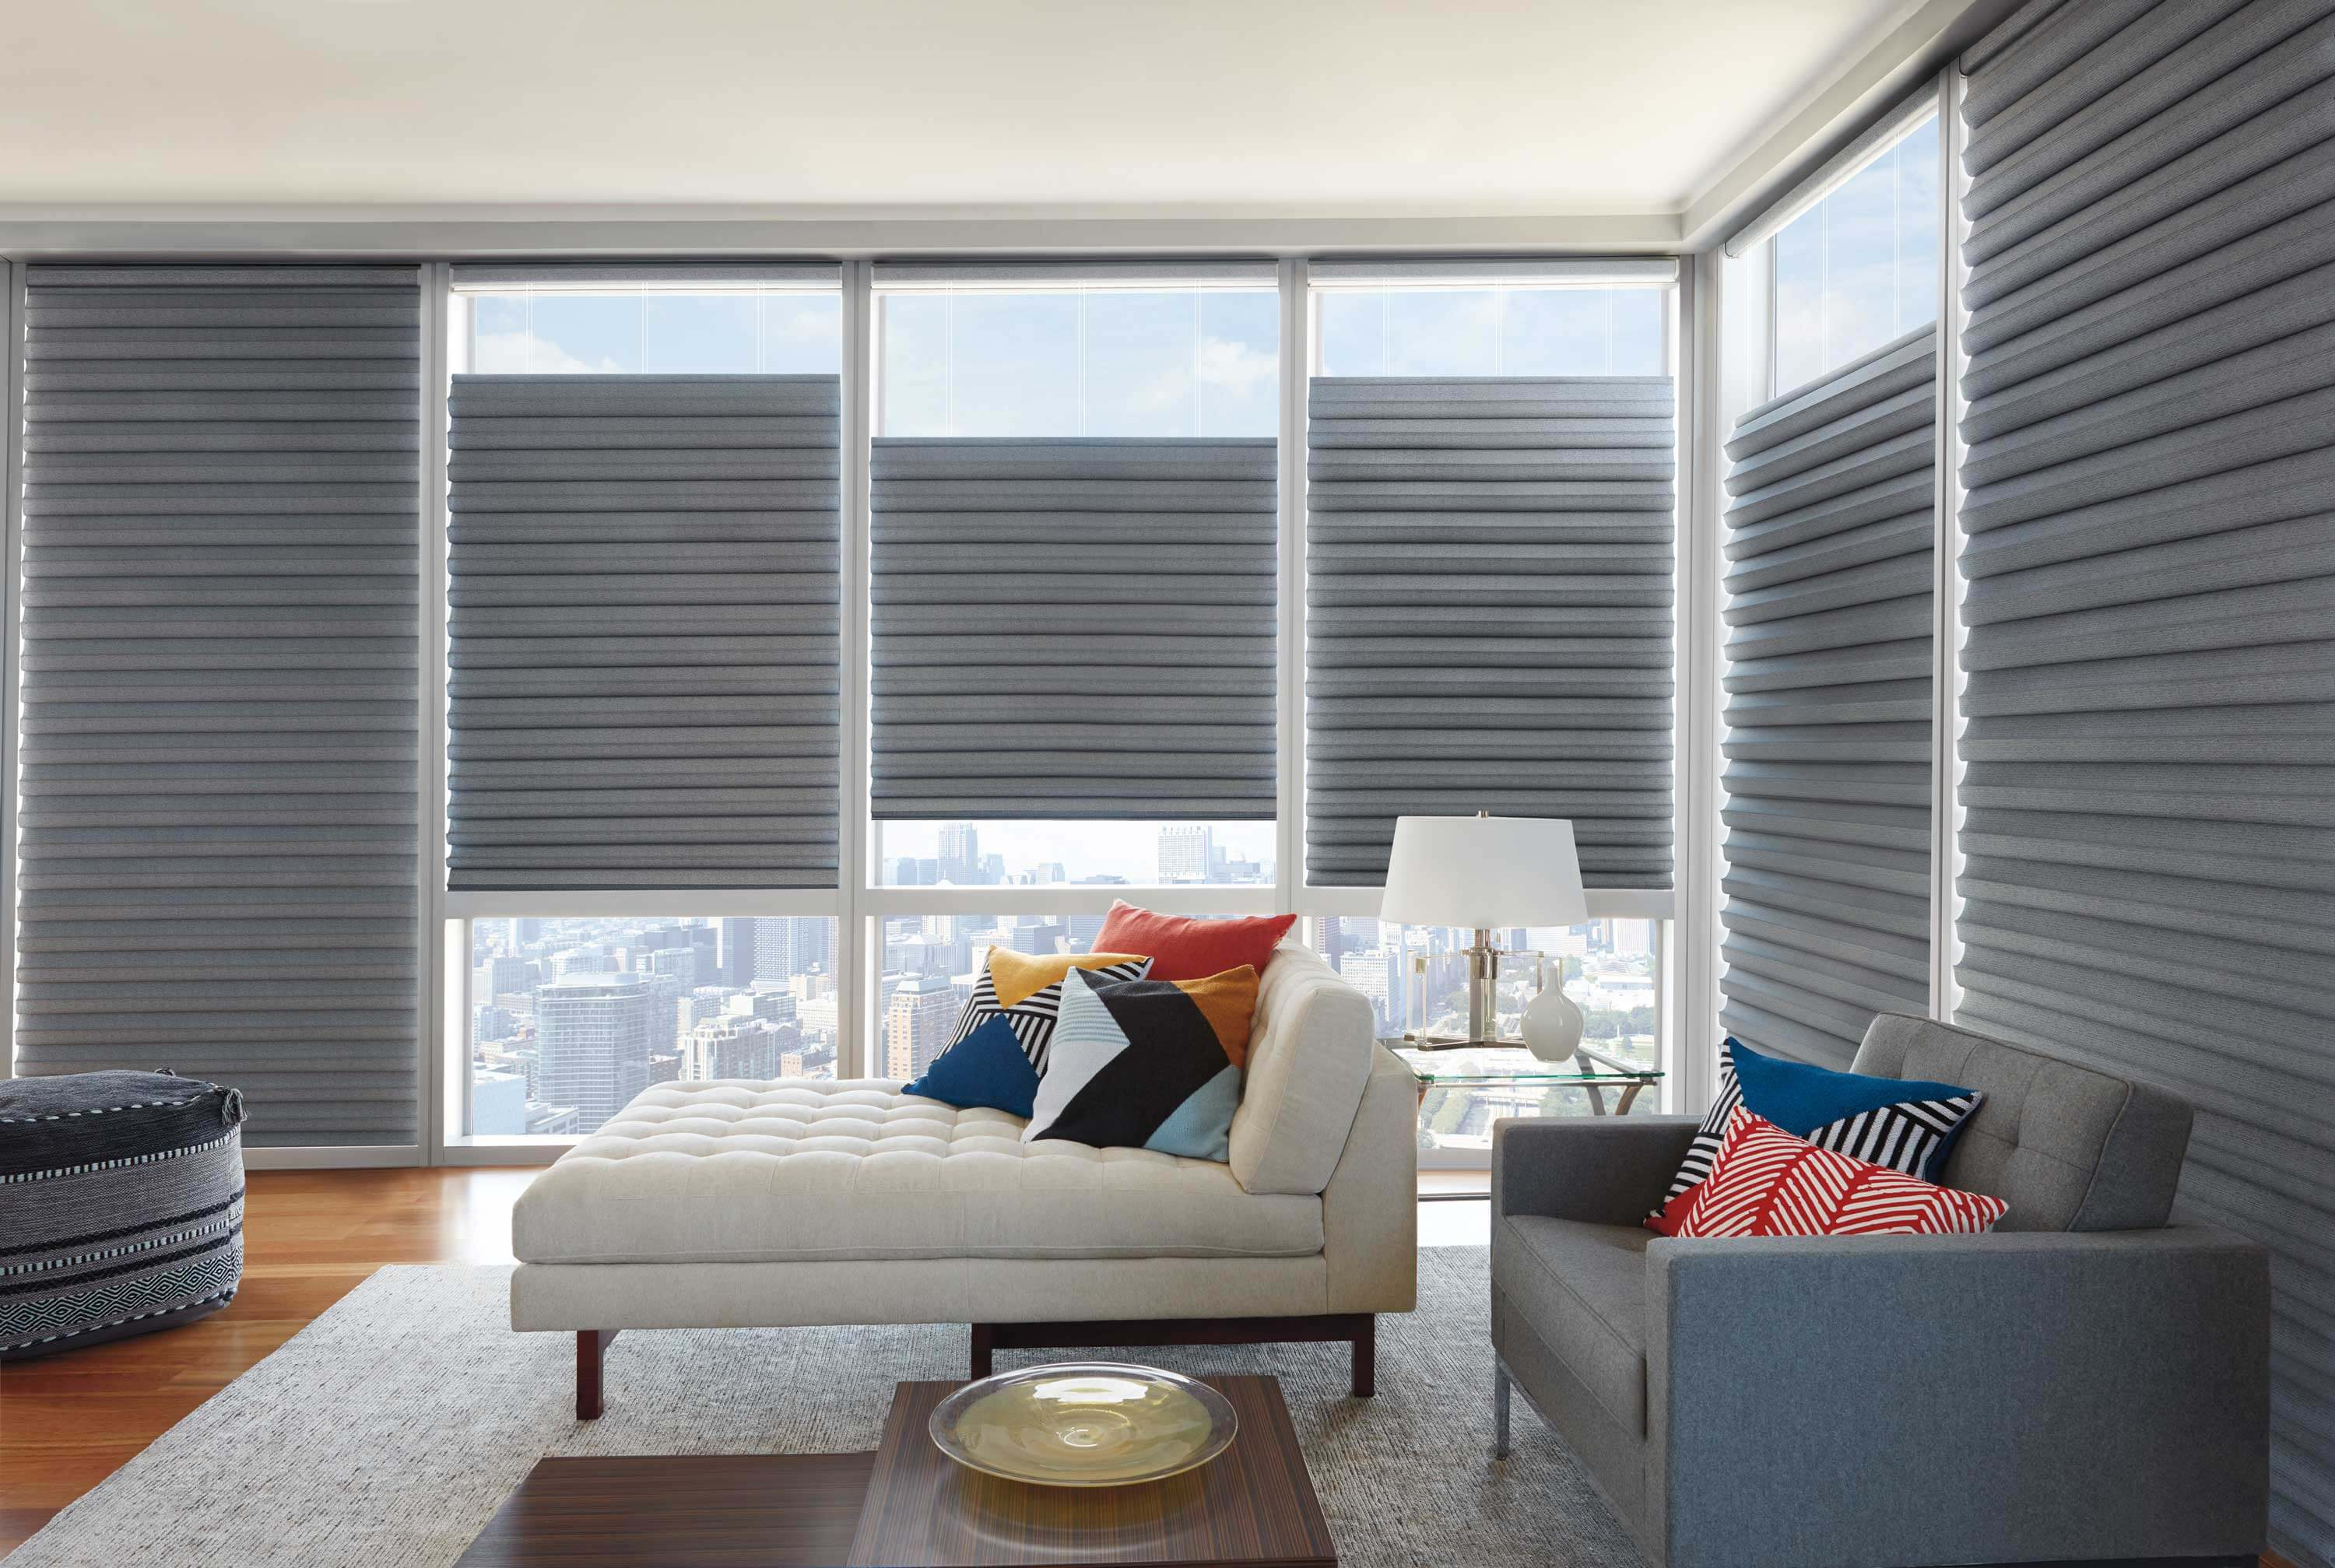 custom residential shades - Southwestern Home Products